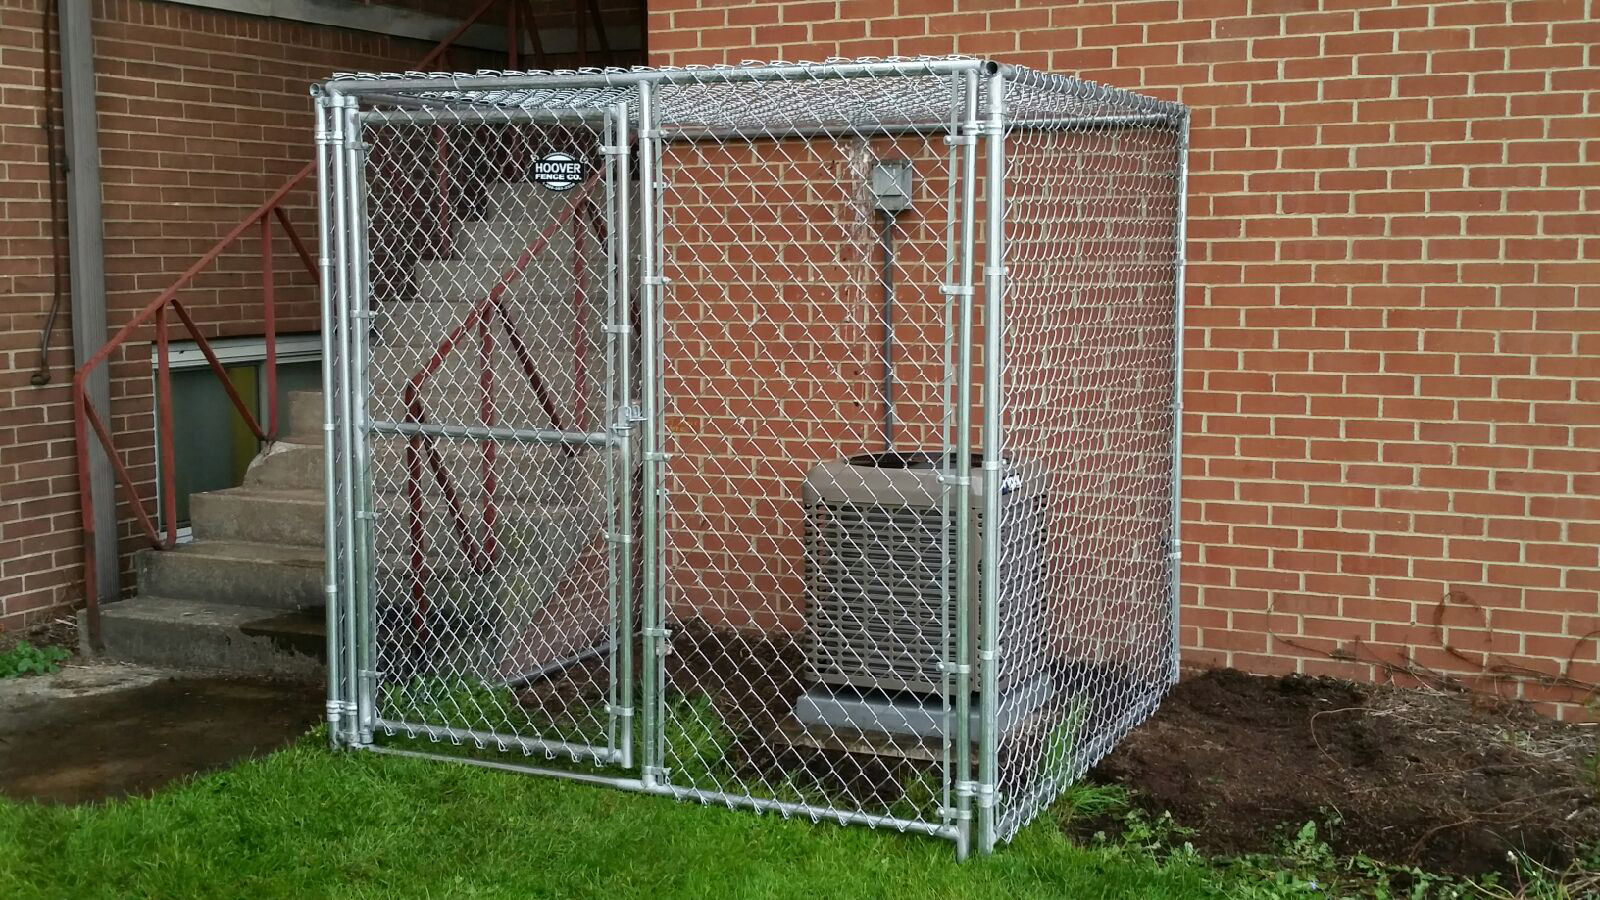 Individual modular kennel panel pricing hoover fence co ac cage built from chain link kennel panels baanklon Choice Image